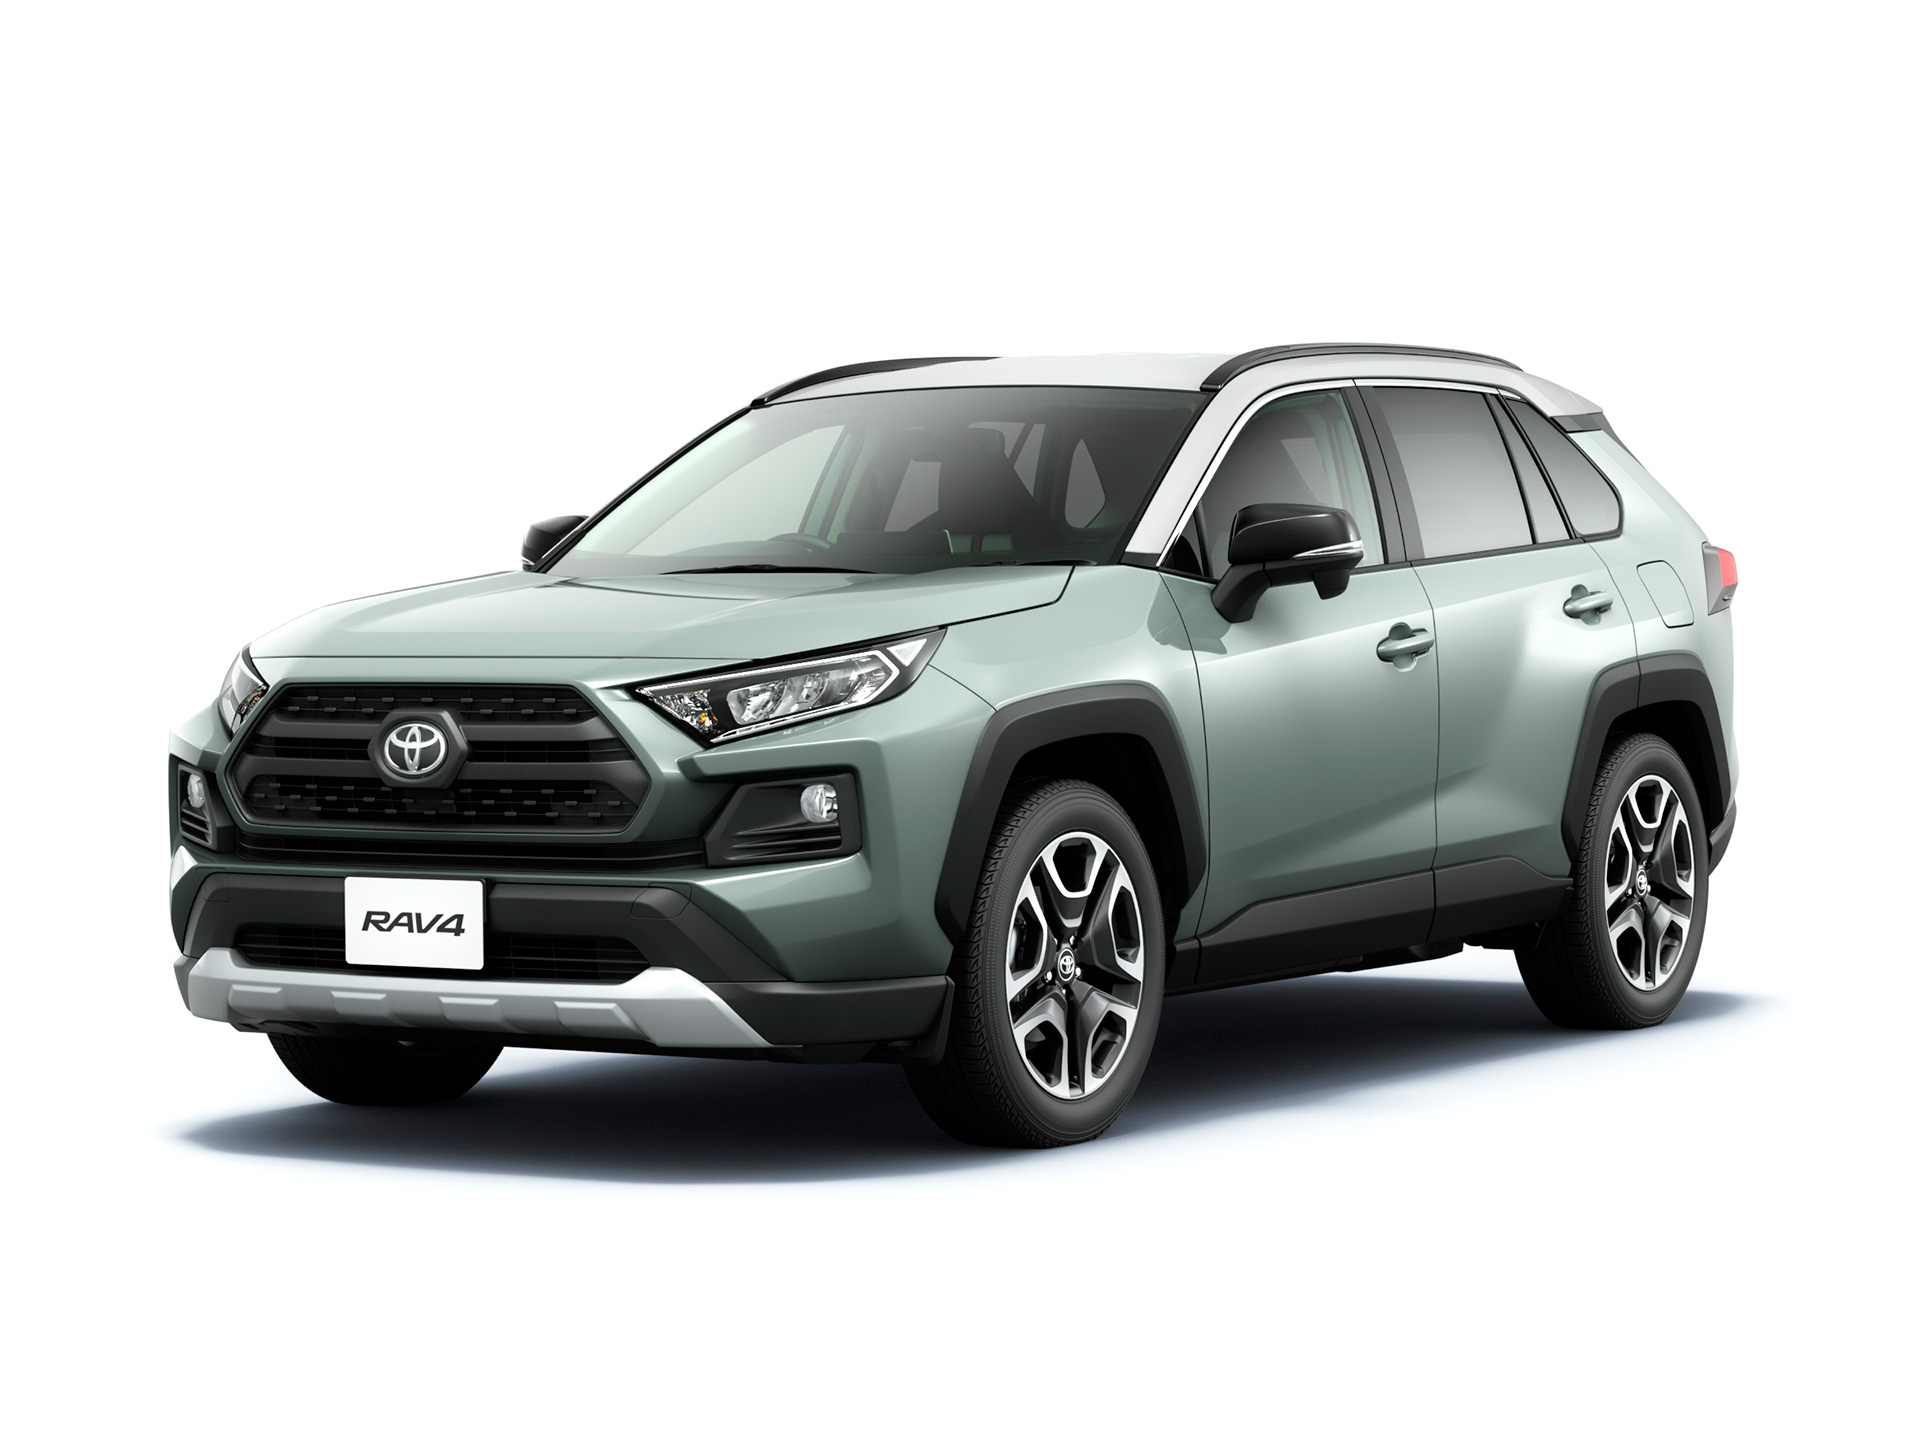 2019 JNCAP Assessment on Toyota Vehicles Announced - Image 2